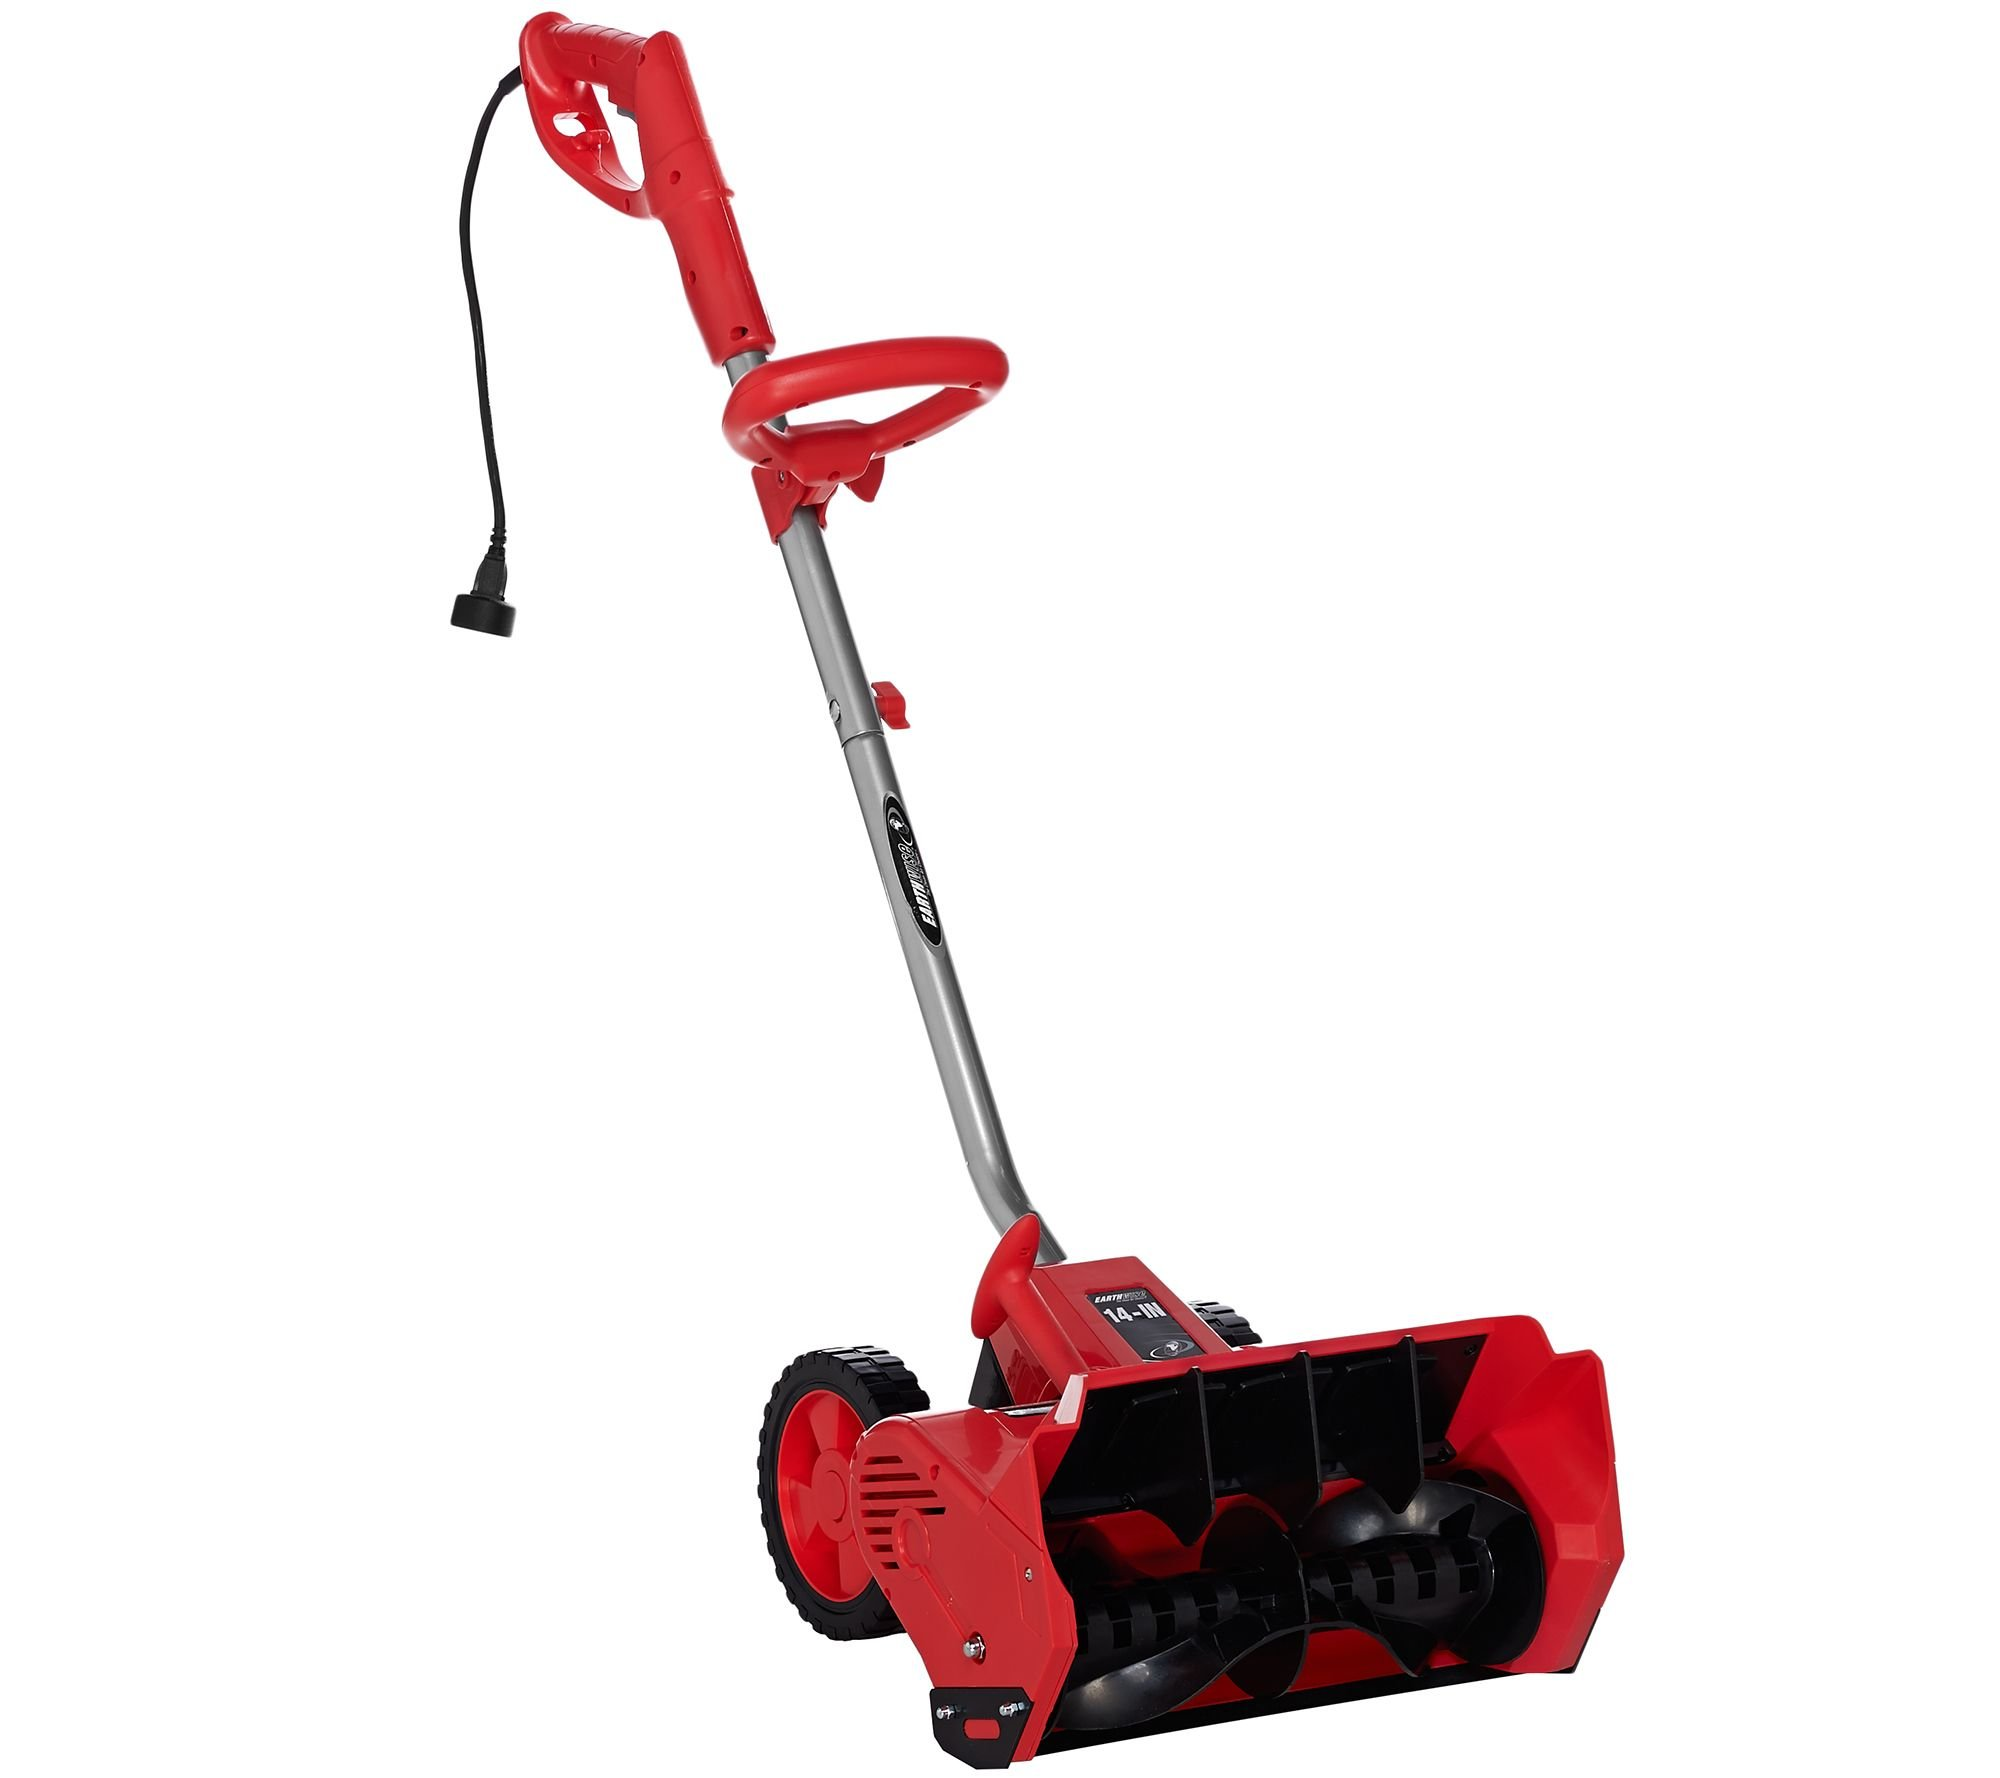 EarthWise Snow Thrower Snow Shovel 12 AMP Corded Electric 14'' - Red